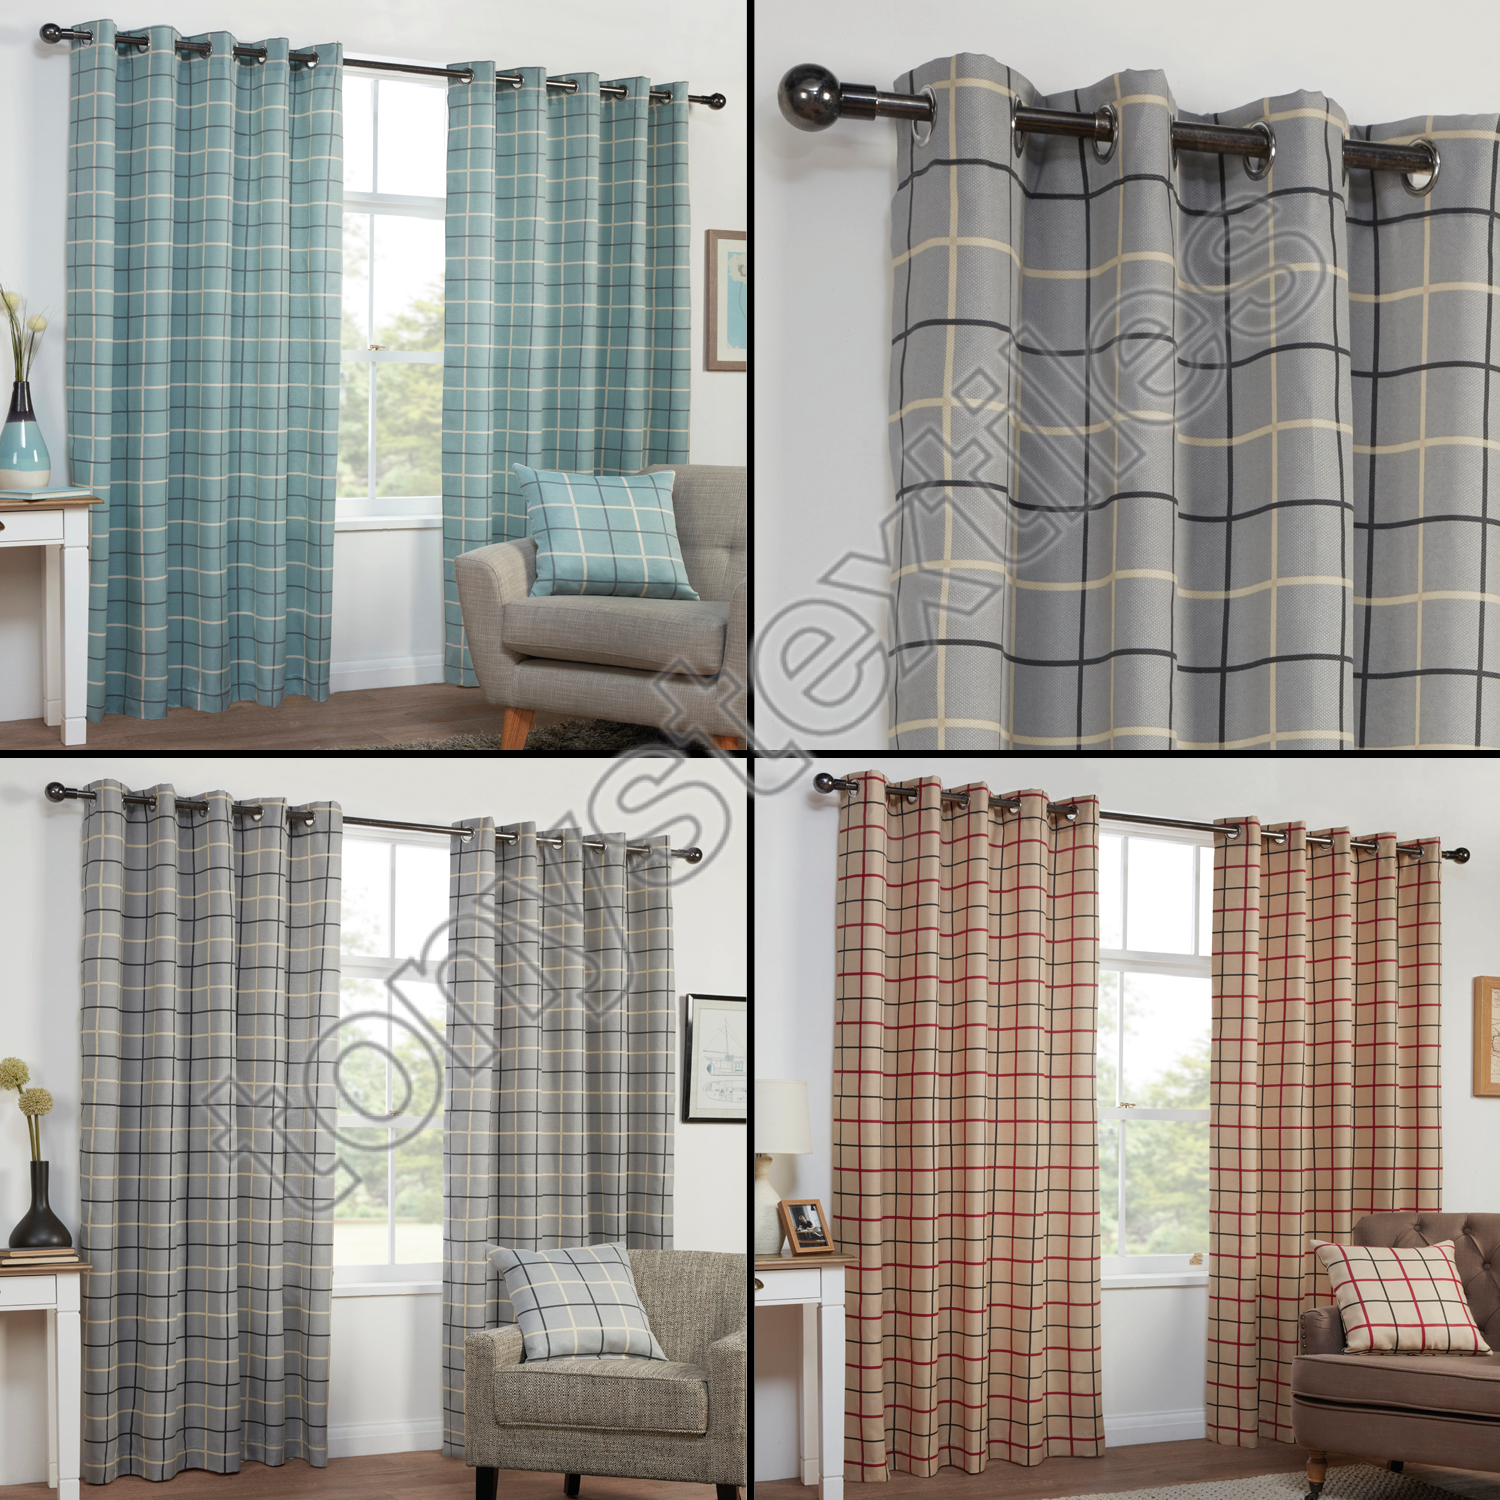 Frilled Kitchen Curtains Lined: TEXTURED CHECK STRIPED RING TOP LINED PAIR EYELET CURTAINS